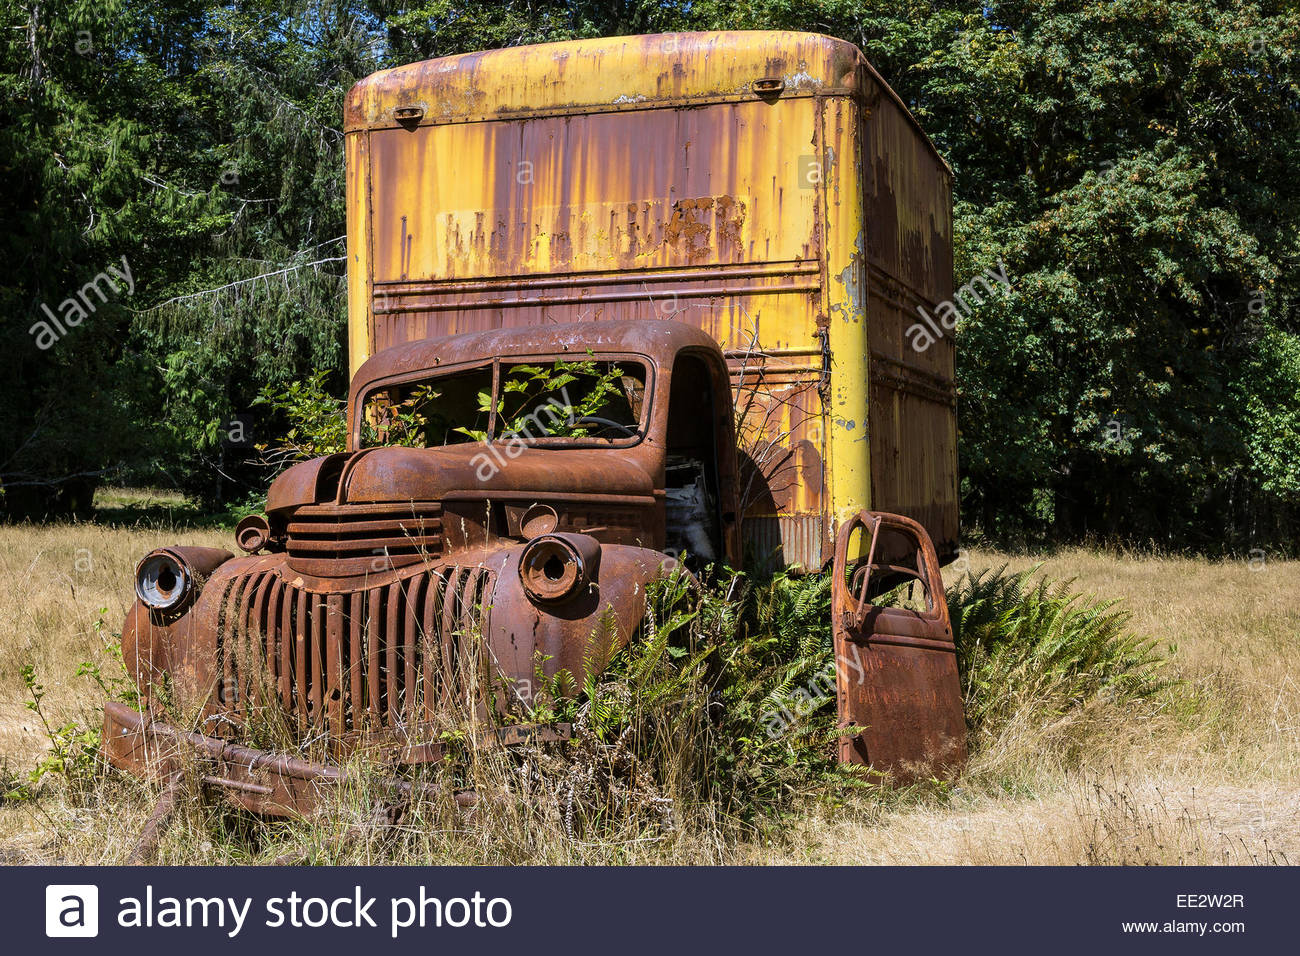 rust-old-rusted-van-in-olympic-national-